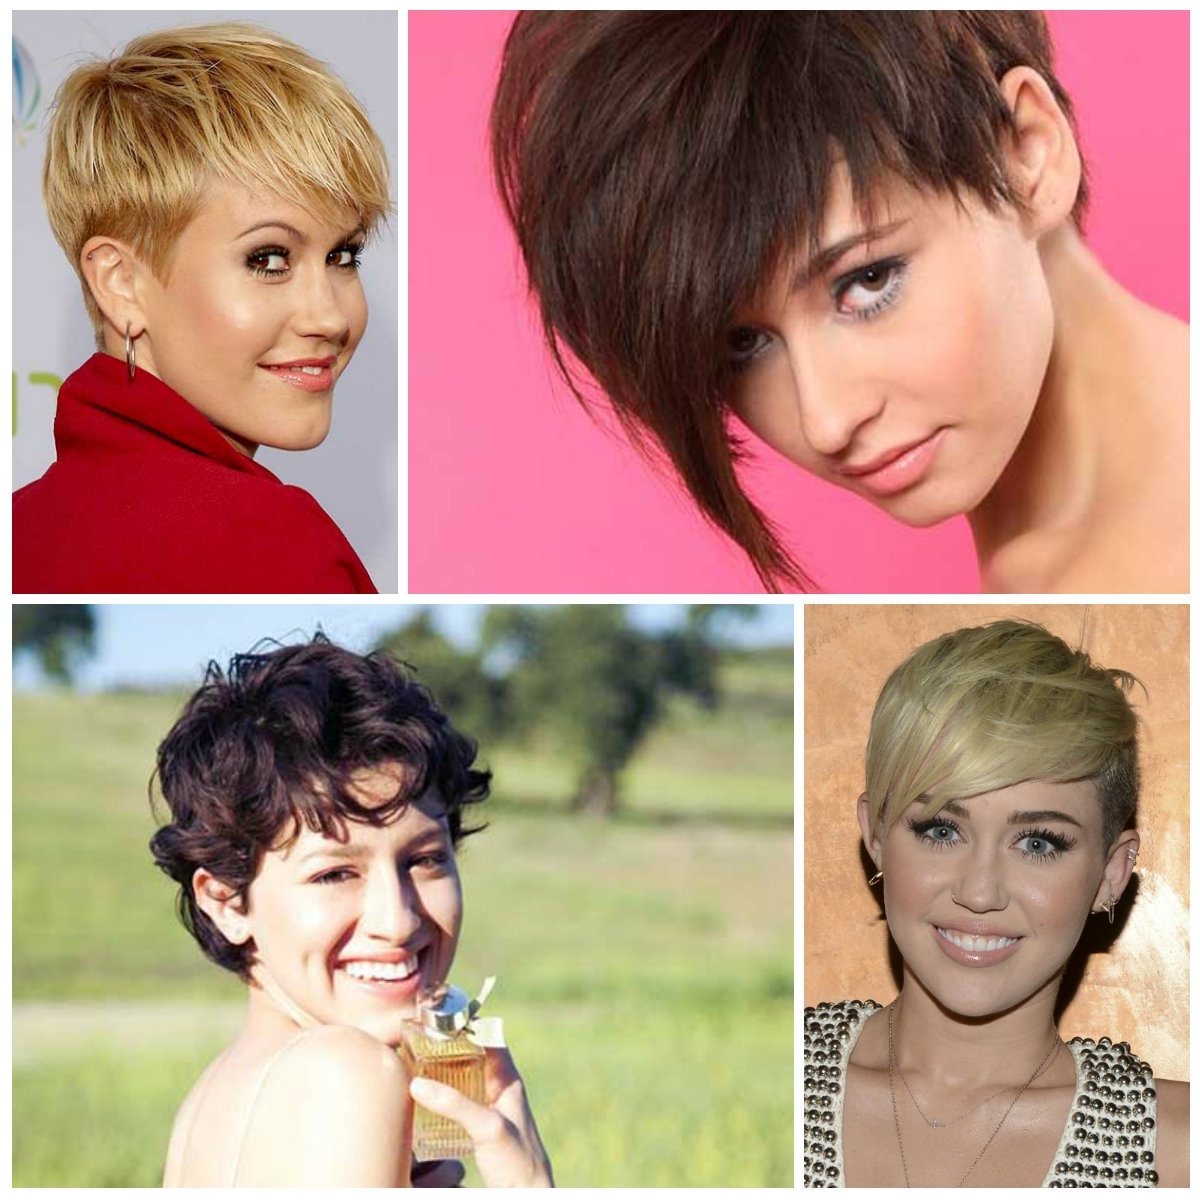 2016 Trendy Pixie Haircuts With Bangs   2017 Haircuts, Hairstyles Throughout Most Up To Date Pixie Hairstyles With Bangs (View 5 of 15)